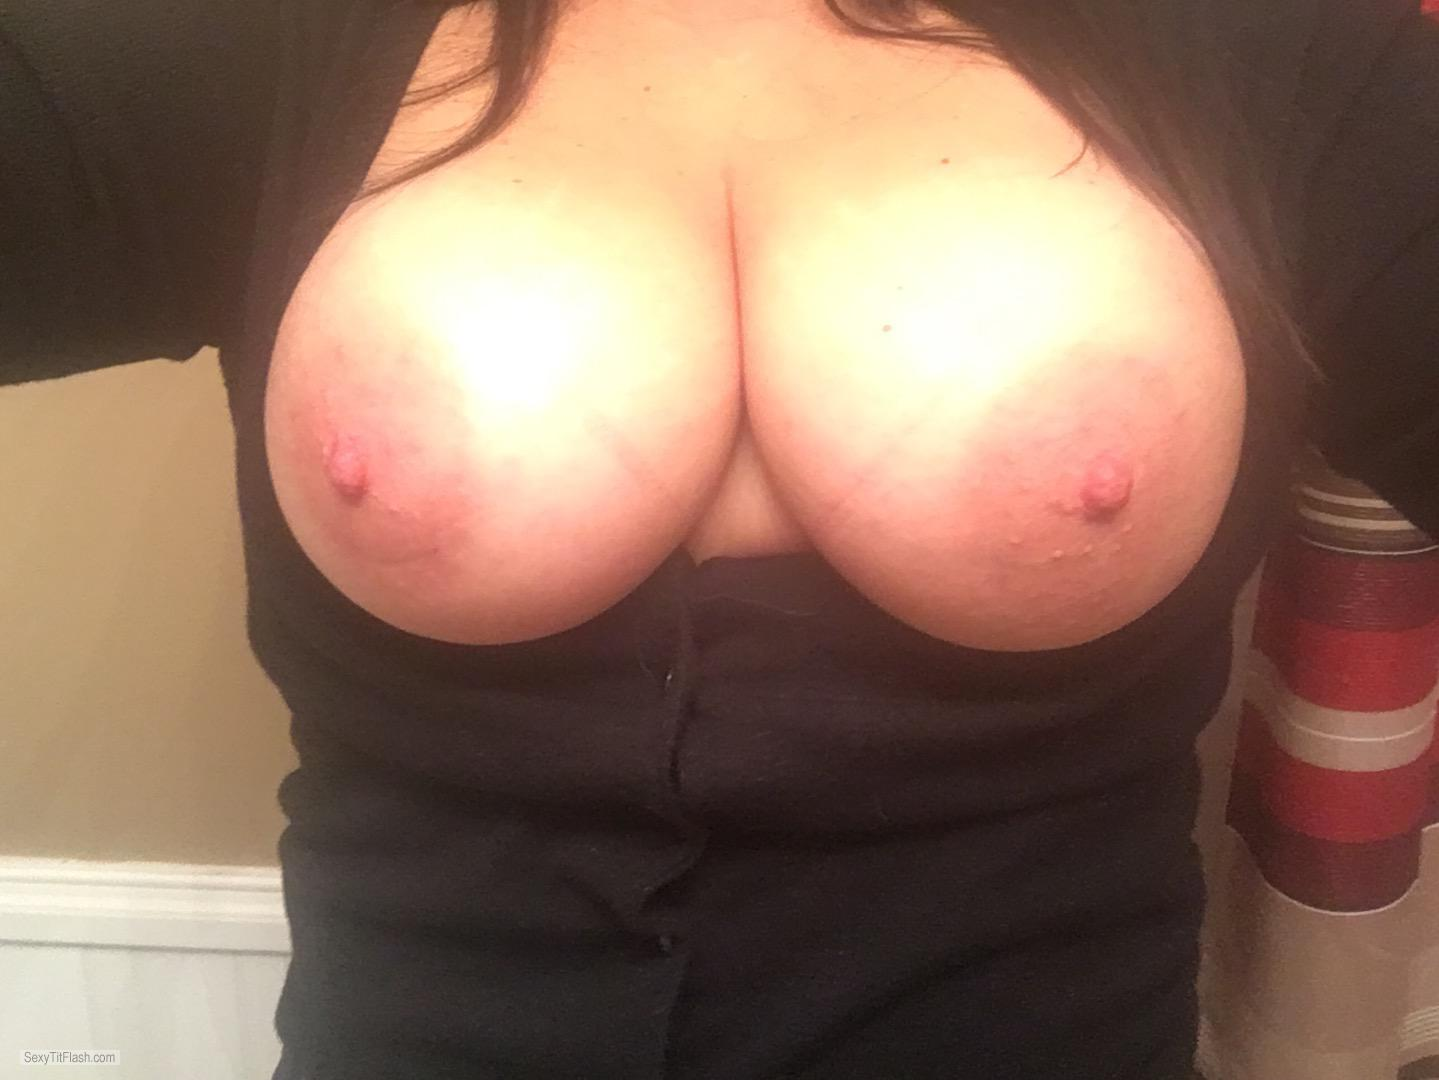 Big Tits Of My Wife Selfie by Shannon